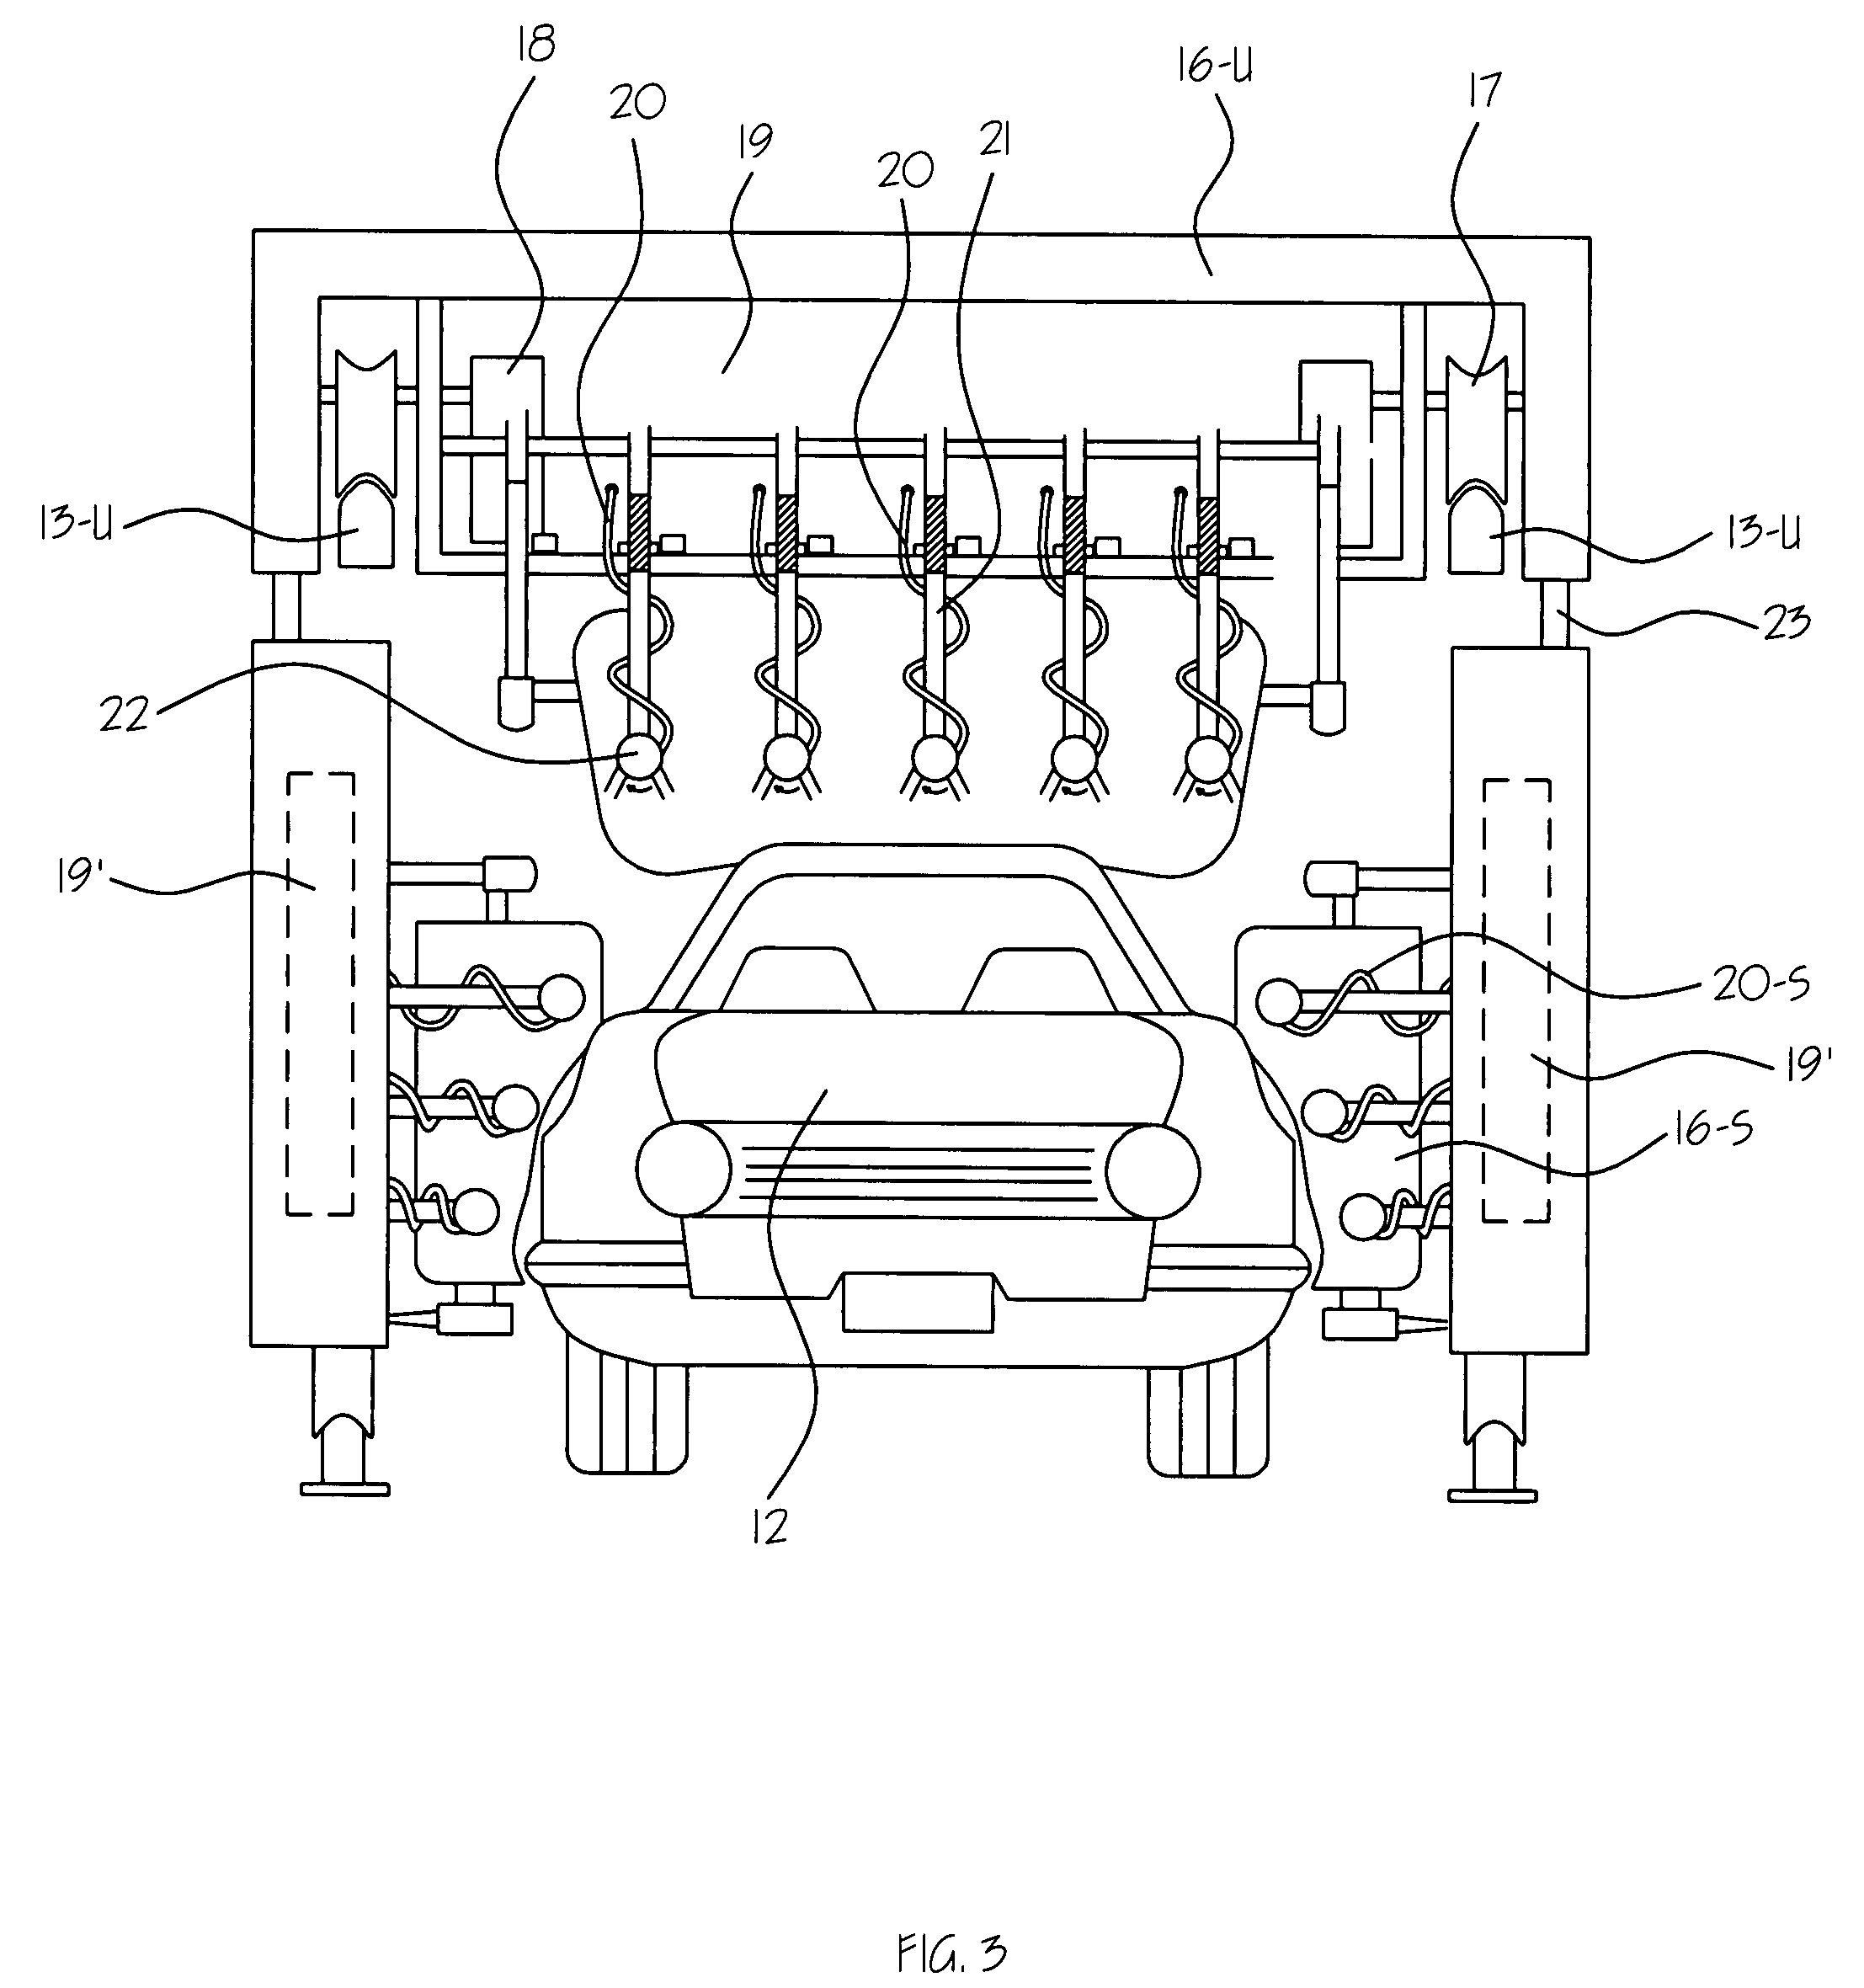 Inalfa Sunroof Wiring Diagrams. Diagram. Auto Wiring Diagram